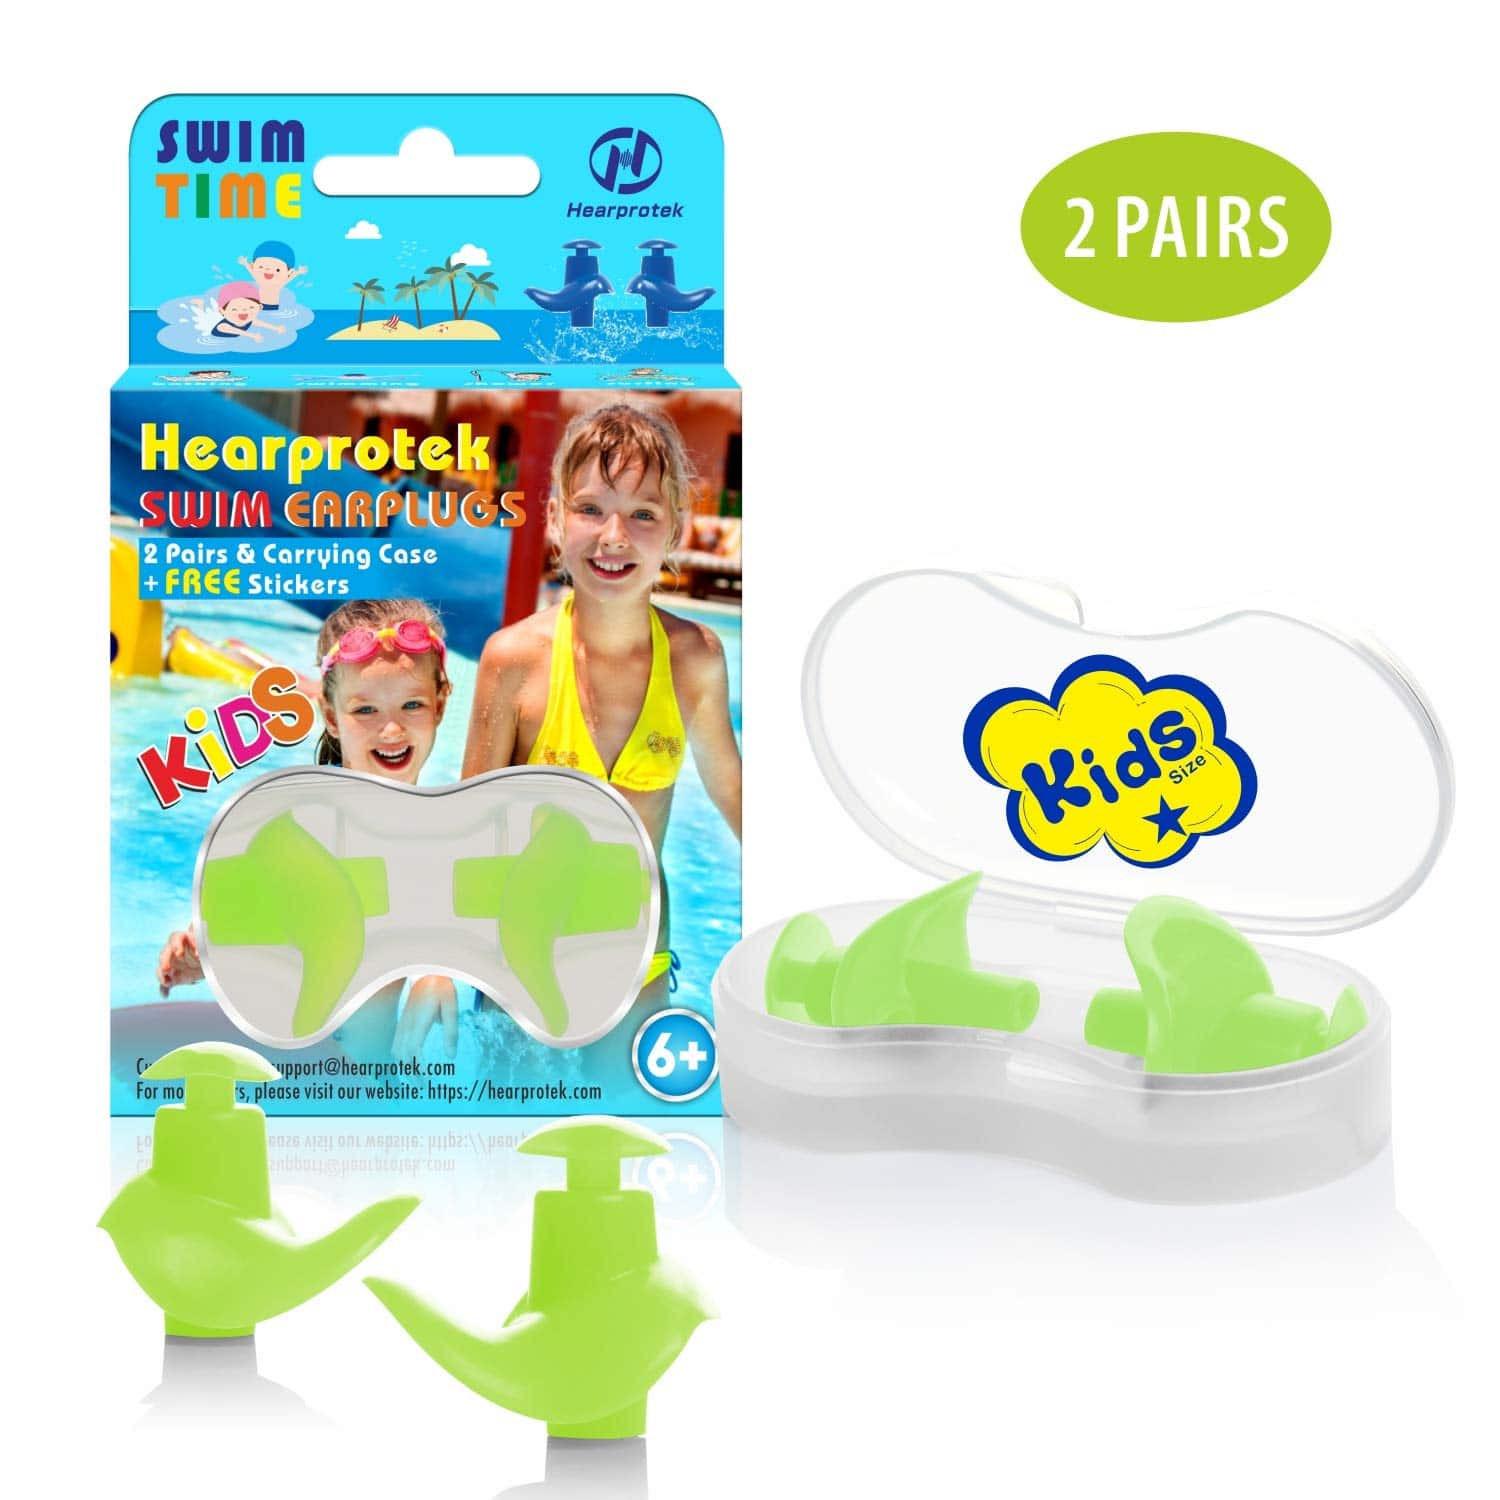 Swimming Ear Plugs for kids size $6.99